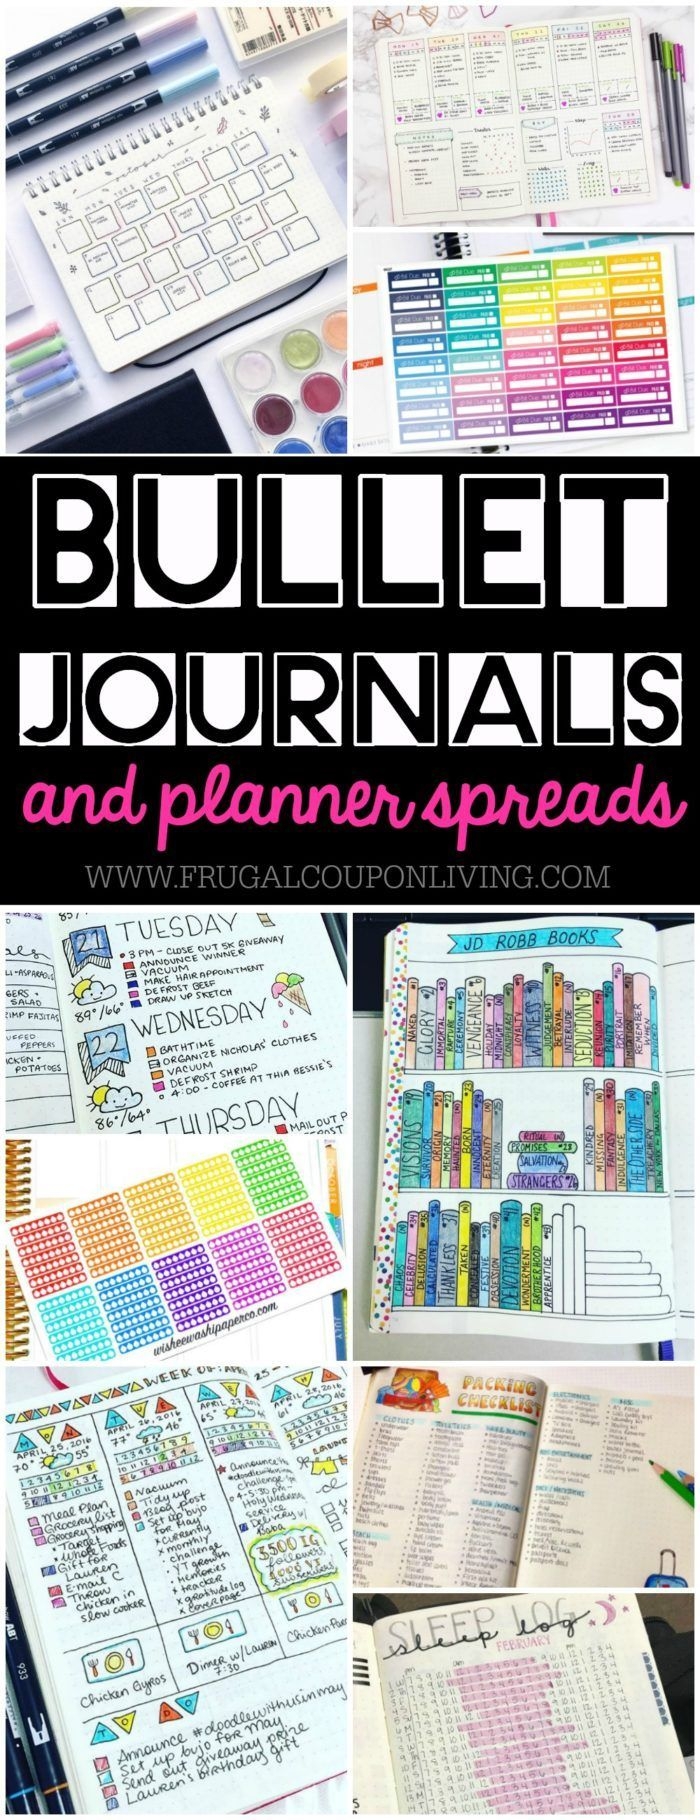 Creative Bullet Journal Ideas and Planner Spreads to organize your life. Inspiri...